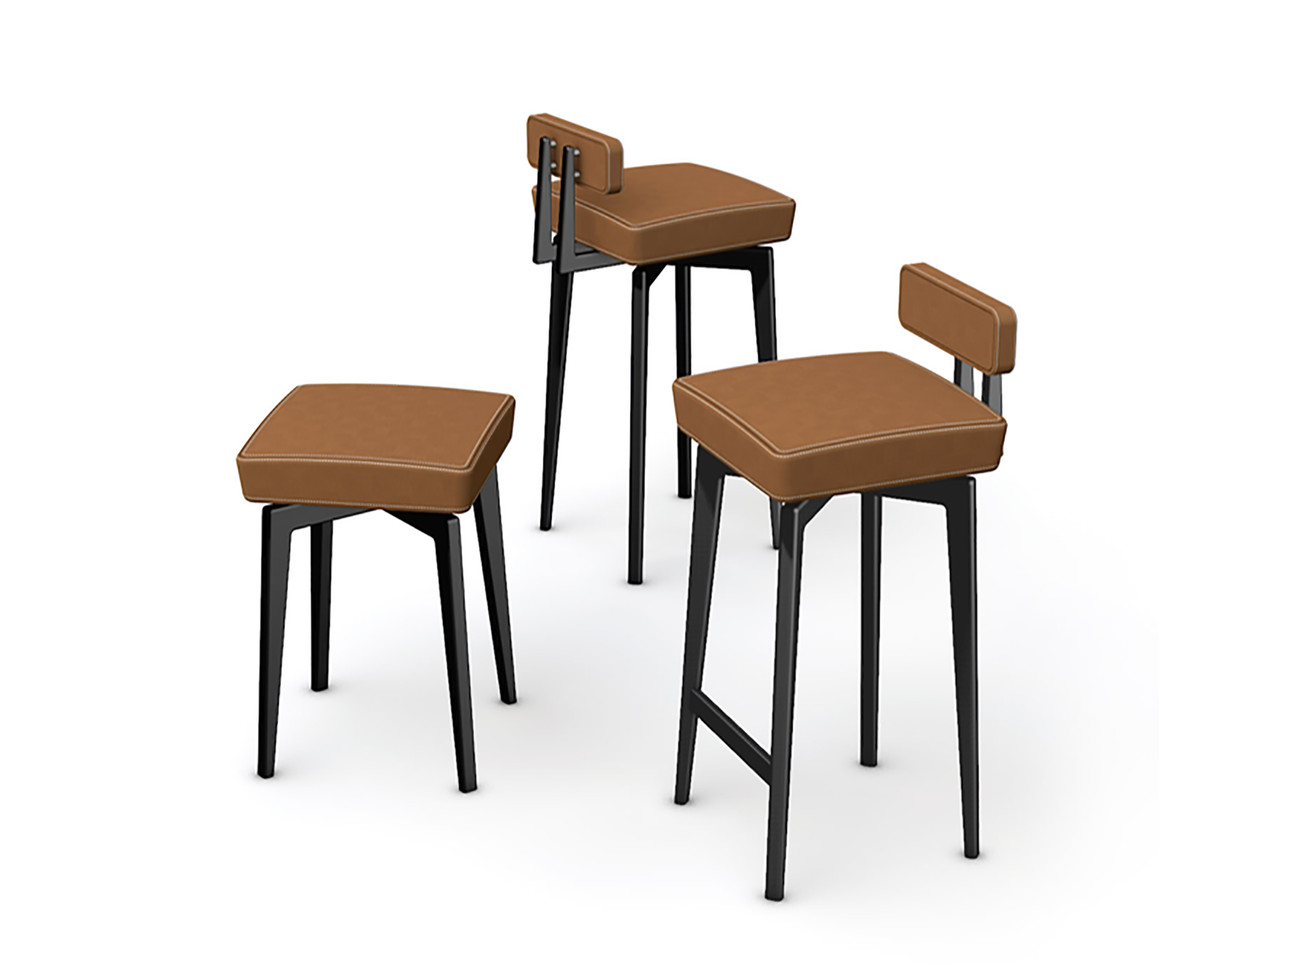 Corner Concept Furniture - Stools